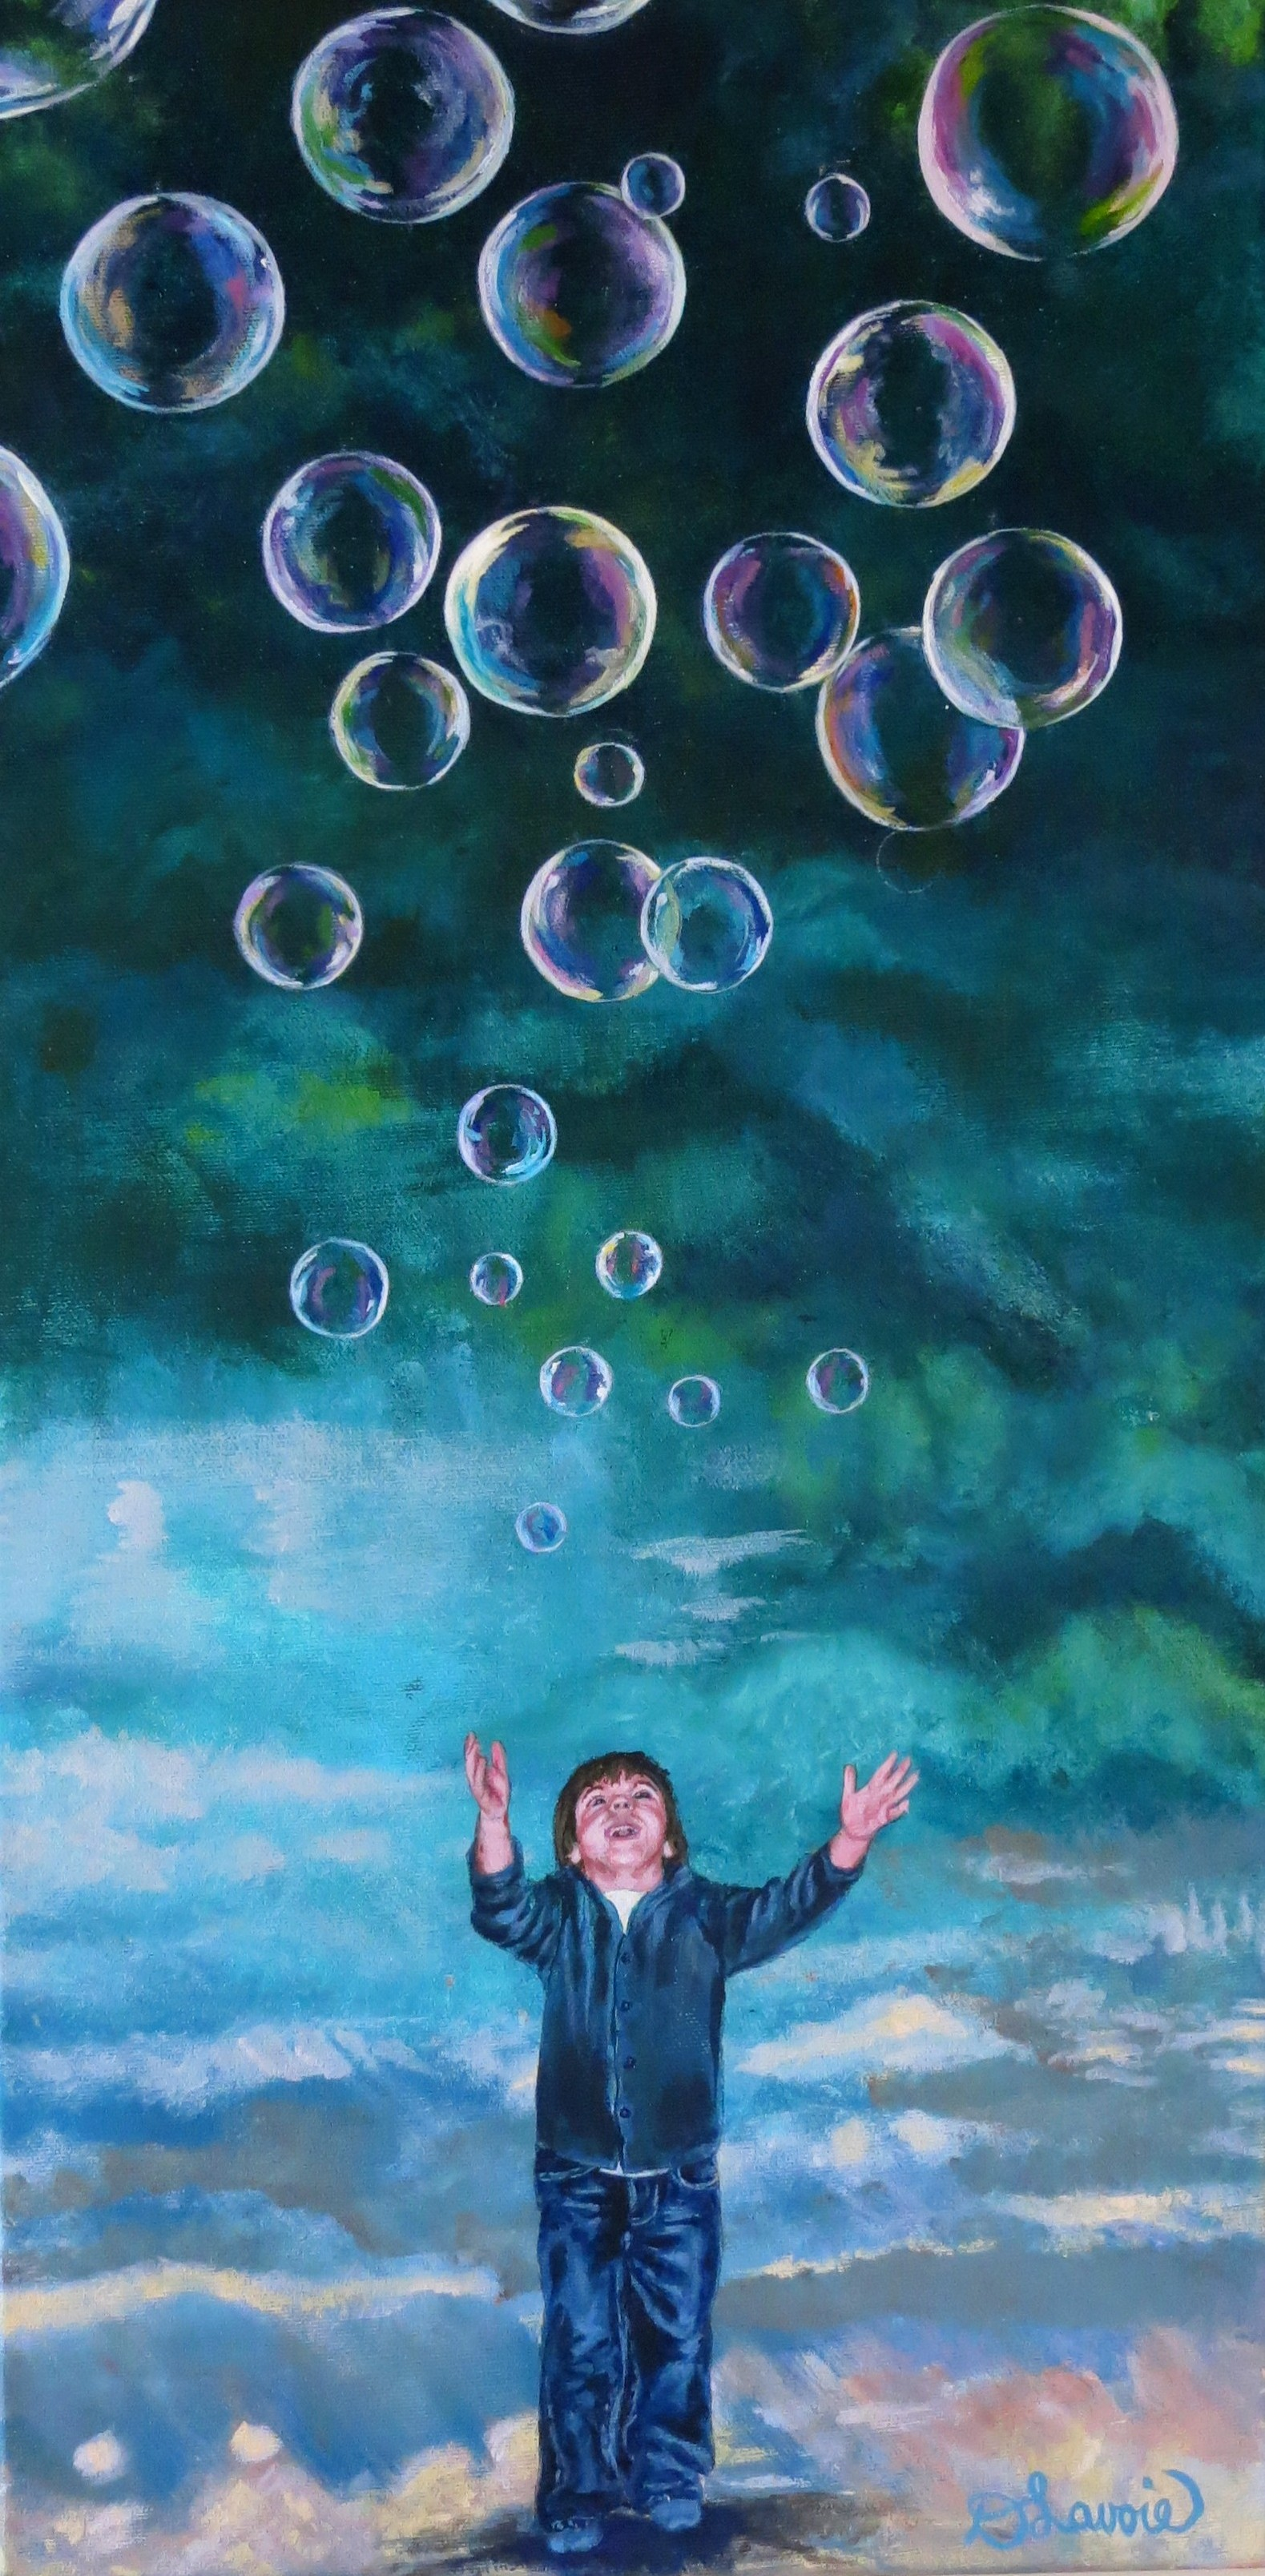 """Worlds         Acrylic on Canvas - 24"""" x 12""""    Both the original and limited edition prints are available.   A child may seem small in our world, but through their eyes, are endless and vast worlds full of magnificent possibilities."""